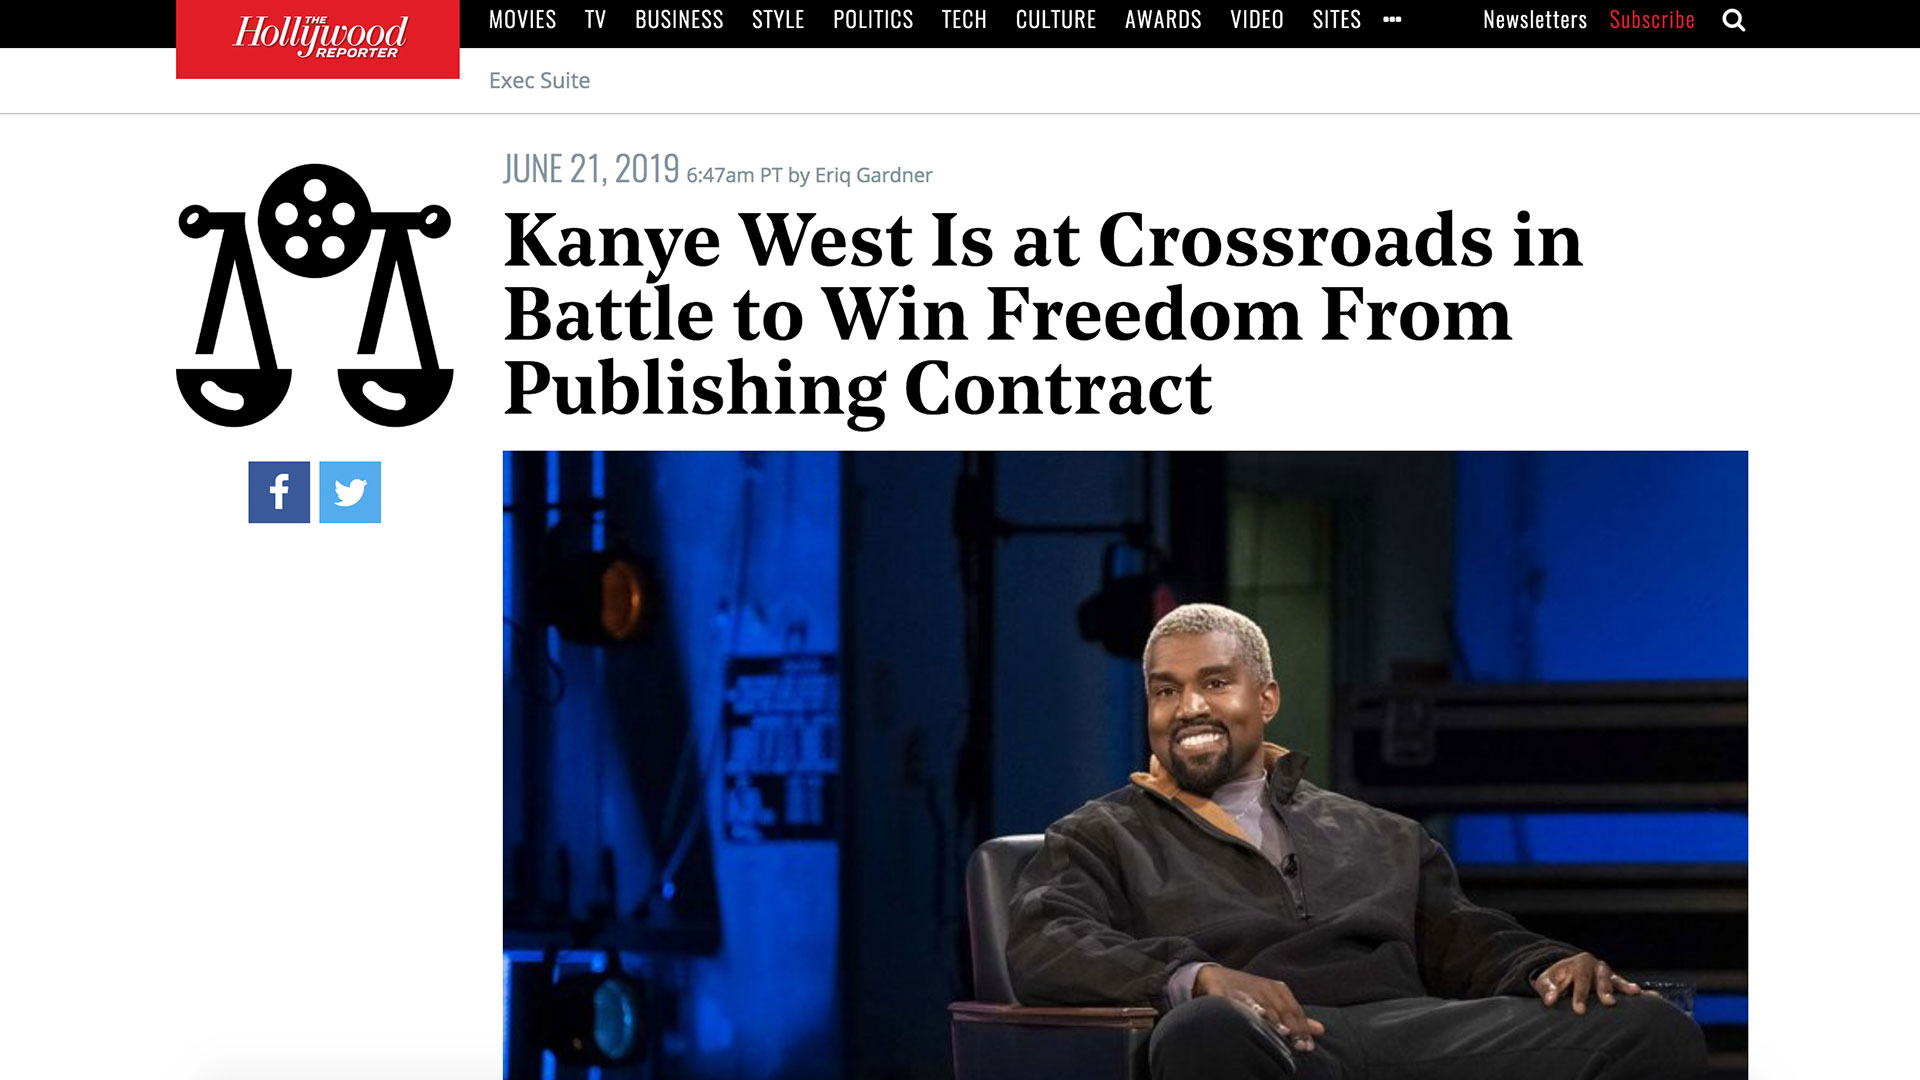 Fairness Rocks News Kanye West Is at Crossroads in Battle to Win Freedom From Publishing Contract